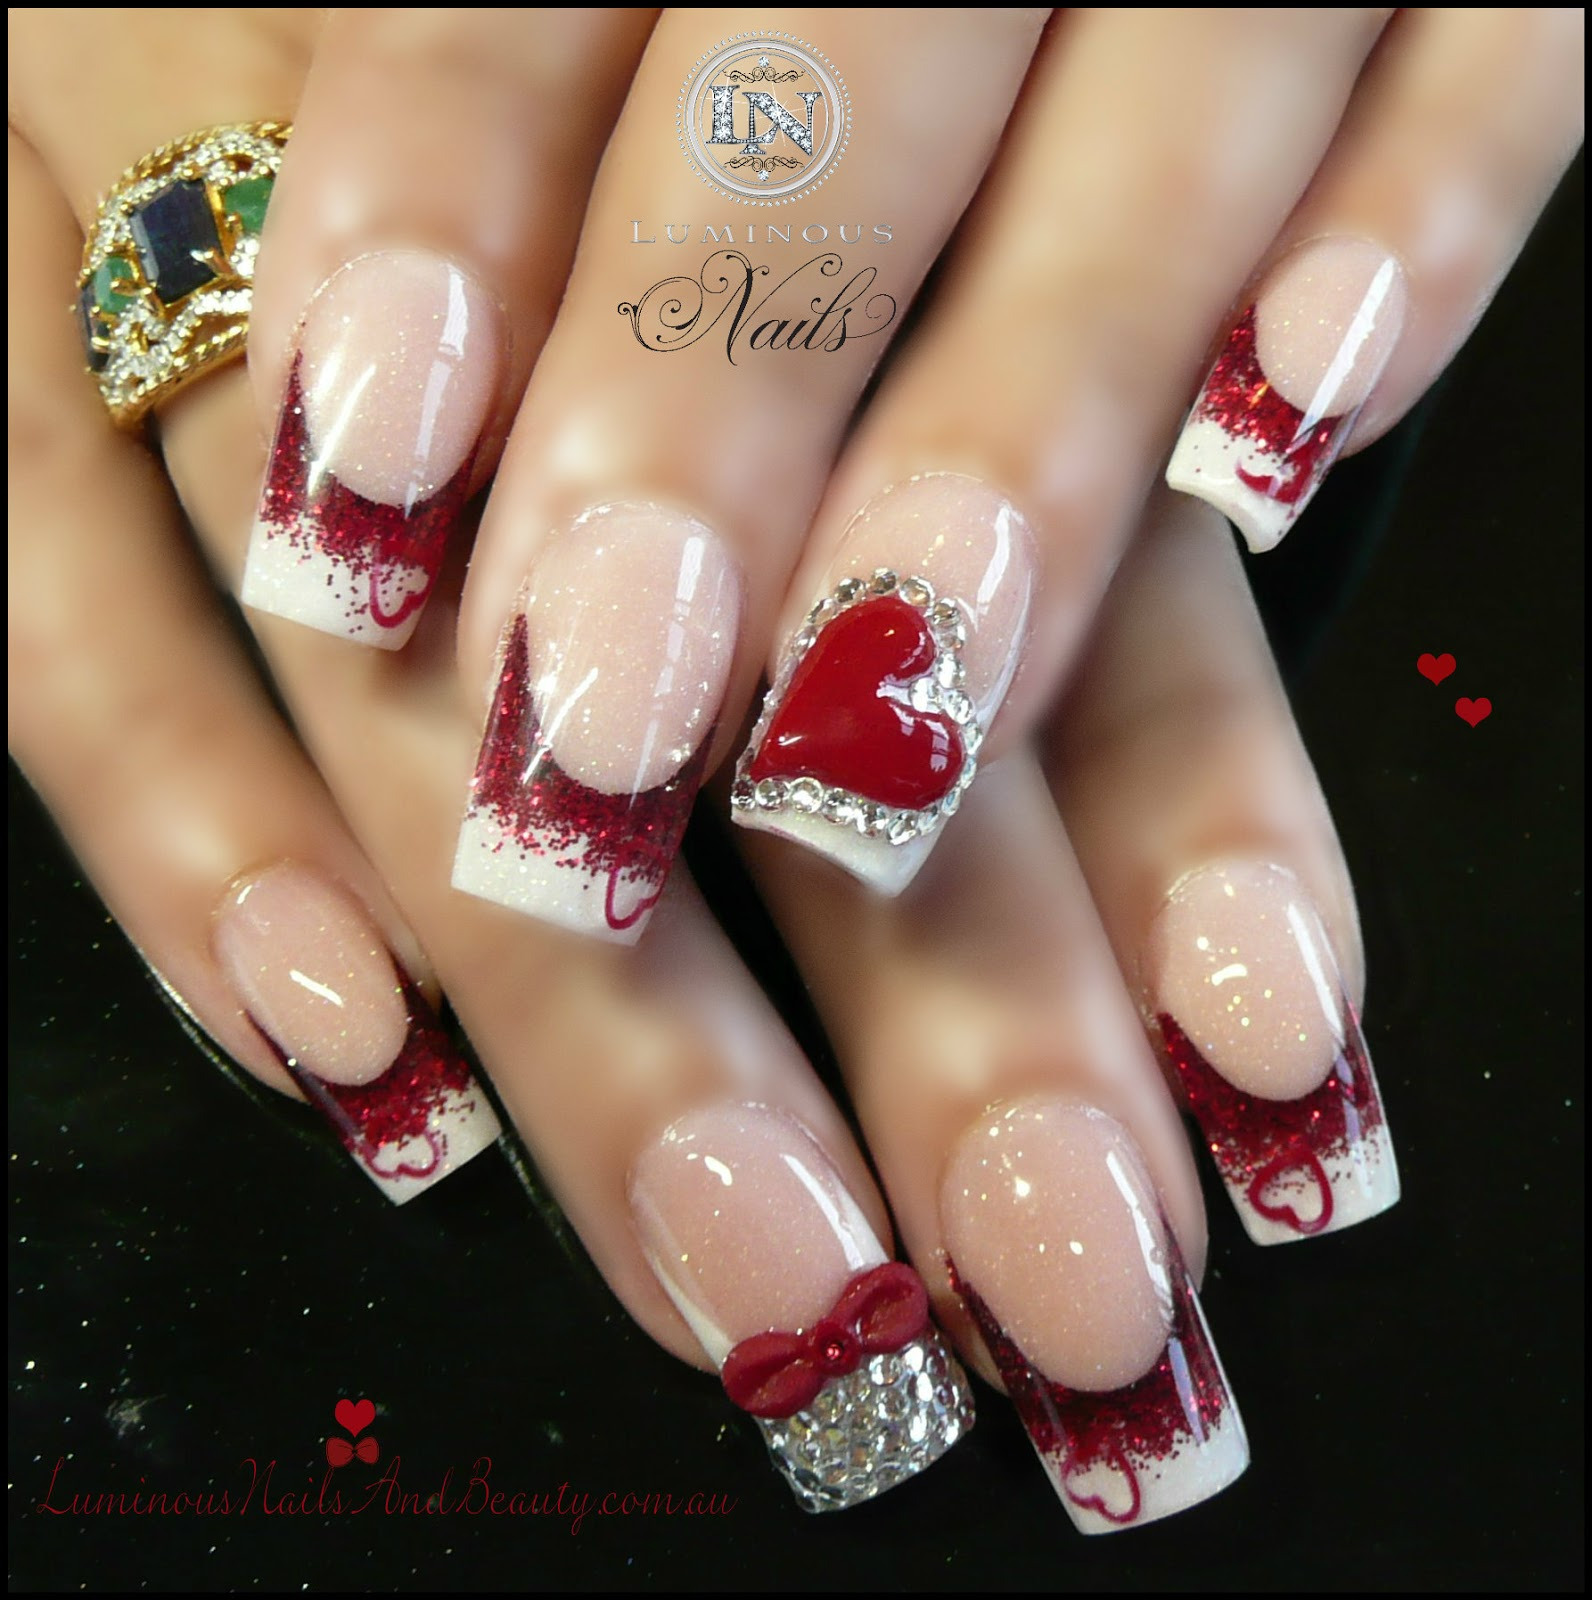 2)15 Awesome Acrylic Nail Designs 2016 You\'ll Want To Copy ...